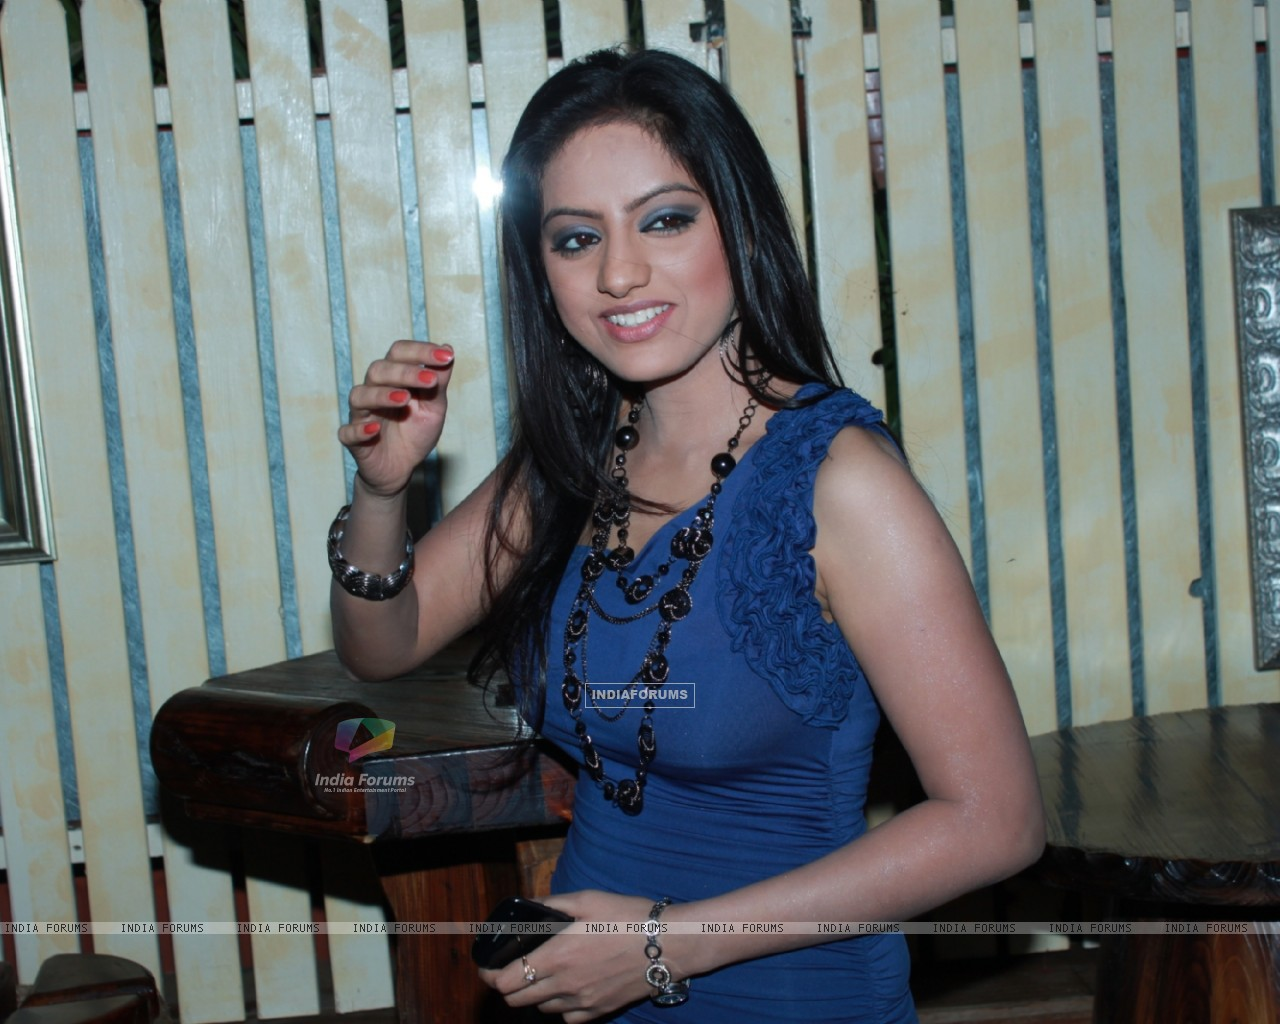 Deepika Singh at 100th episode success party of tvshow 'Diya Aur Baati Hum' at hometown cafe in Juhu (178526) size:1280x1024